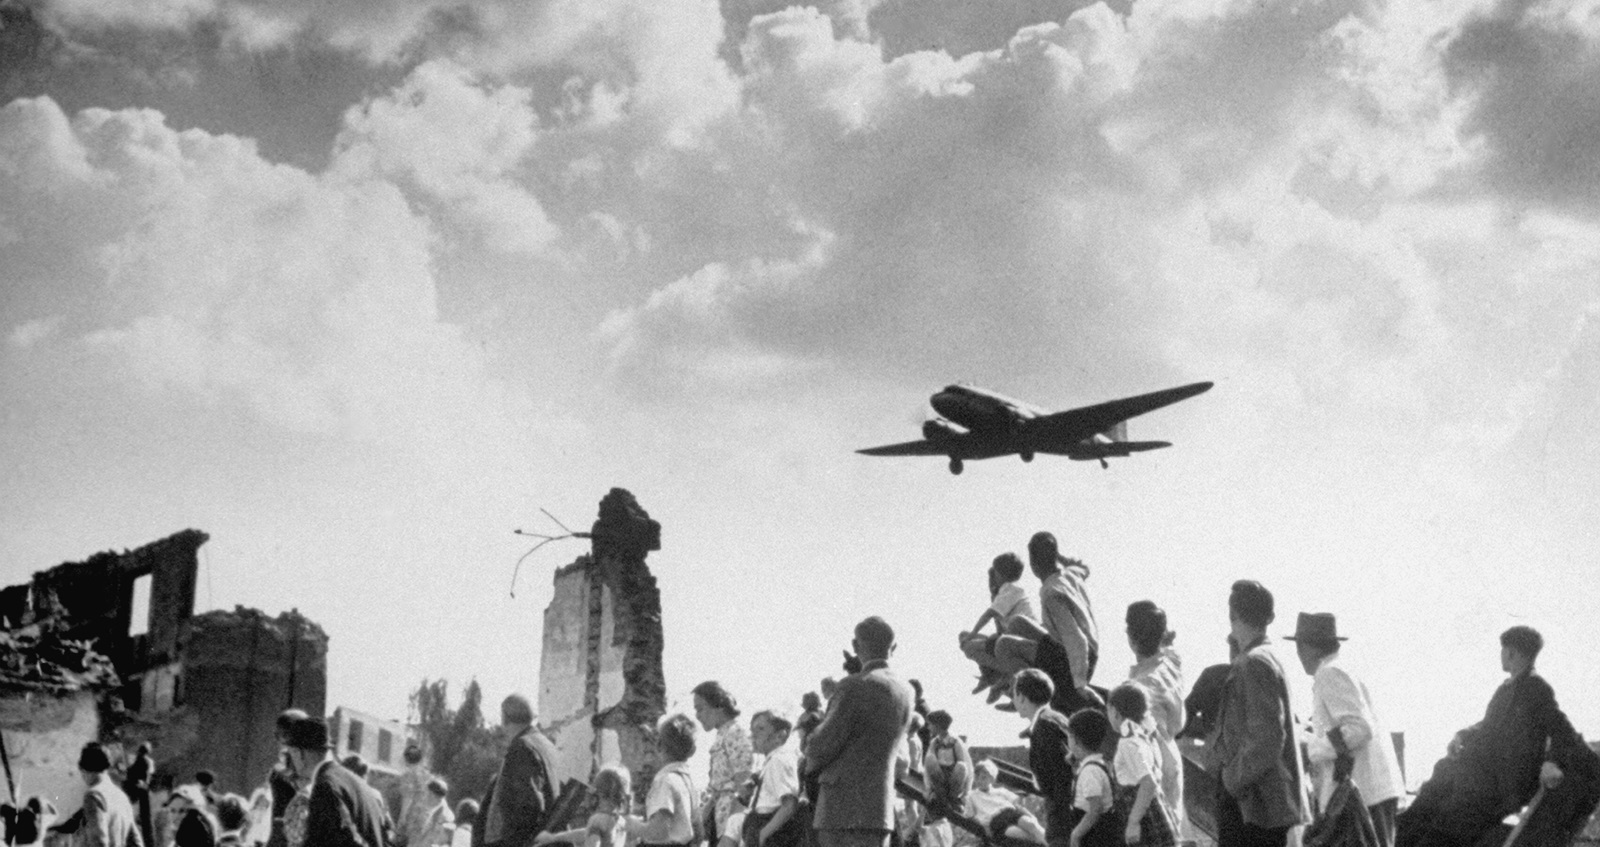 People standing on rubble as plane flies overhead during the Berlin Blockade